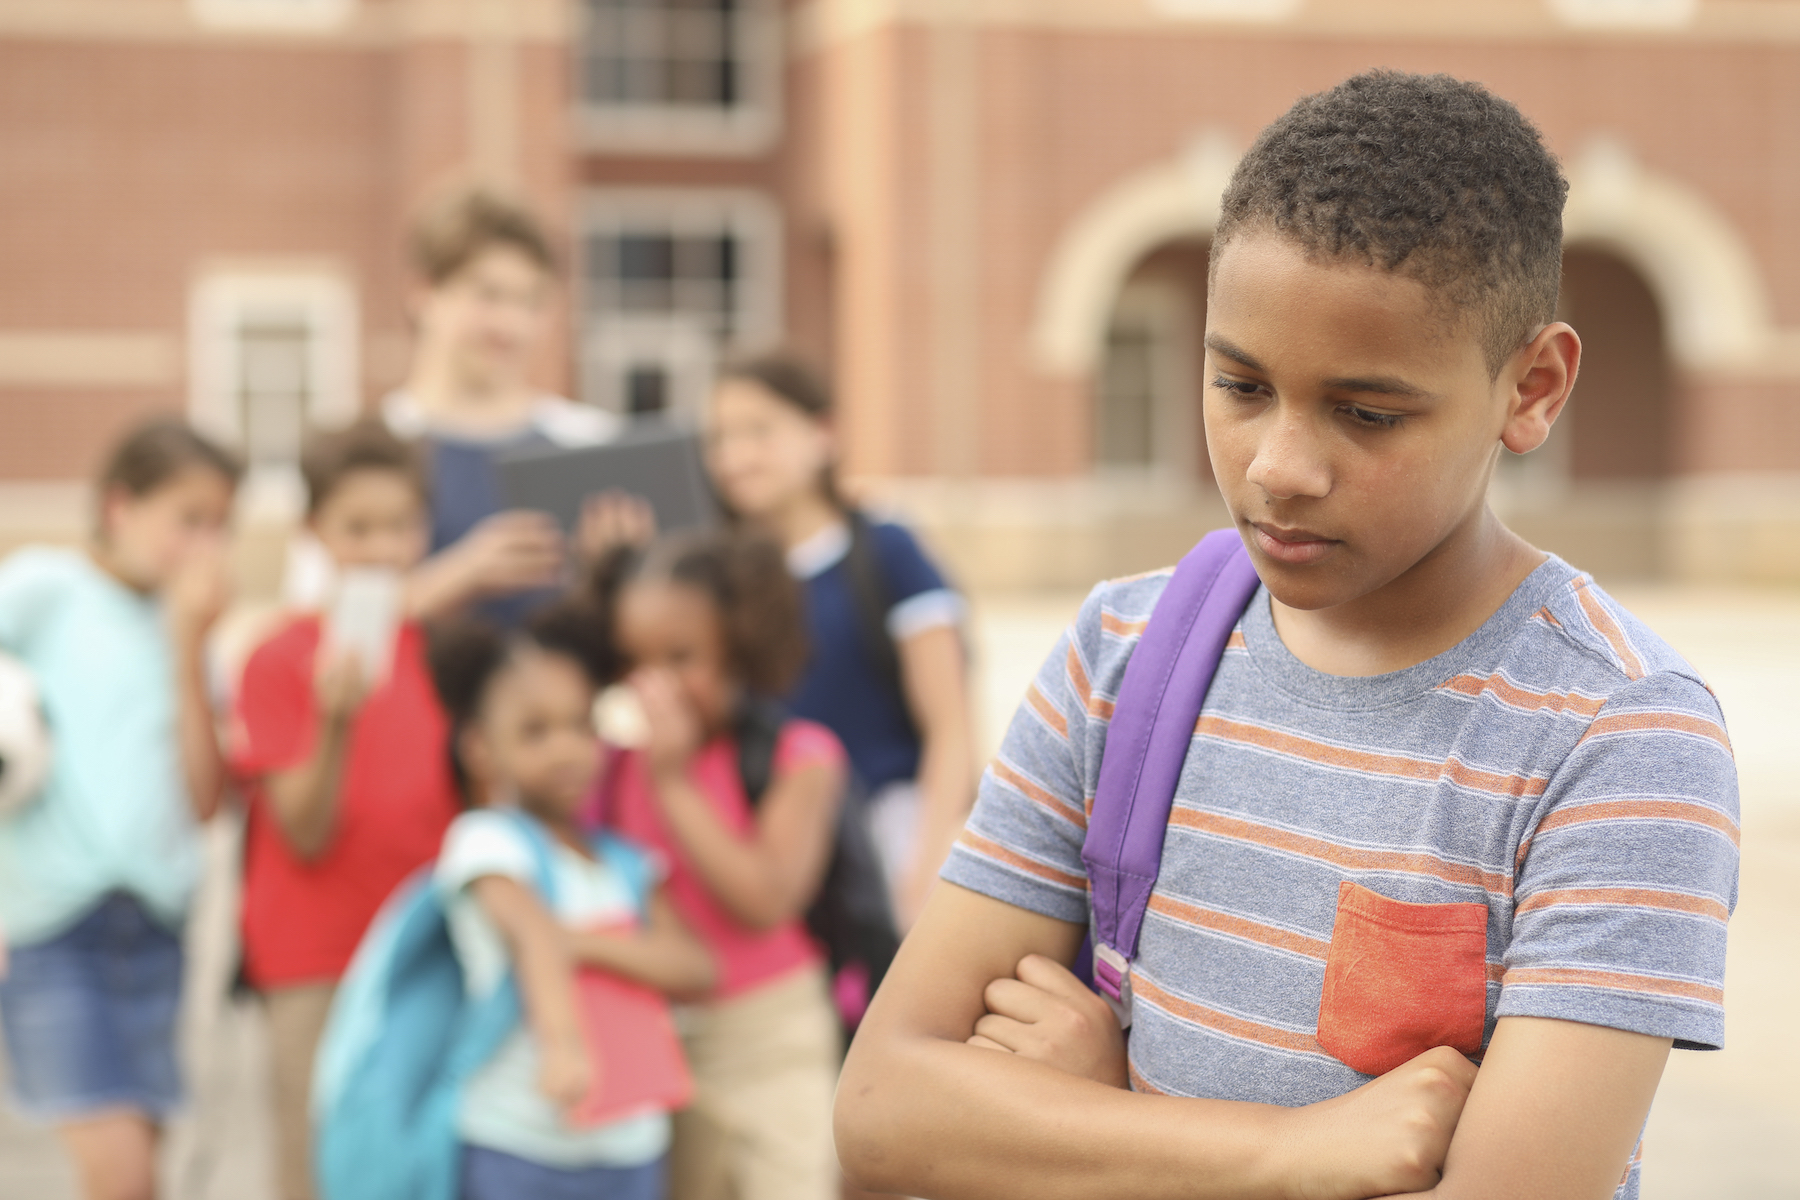 5 signs it's time to change schools